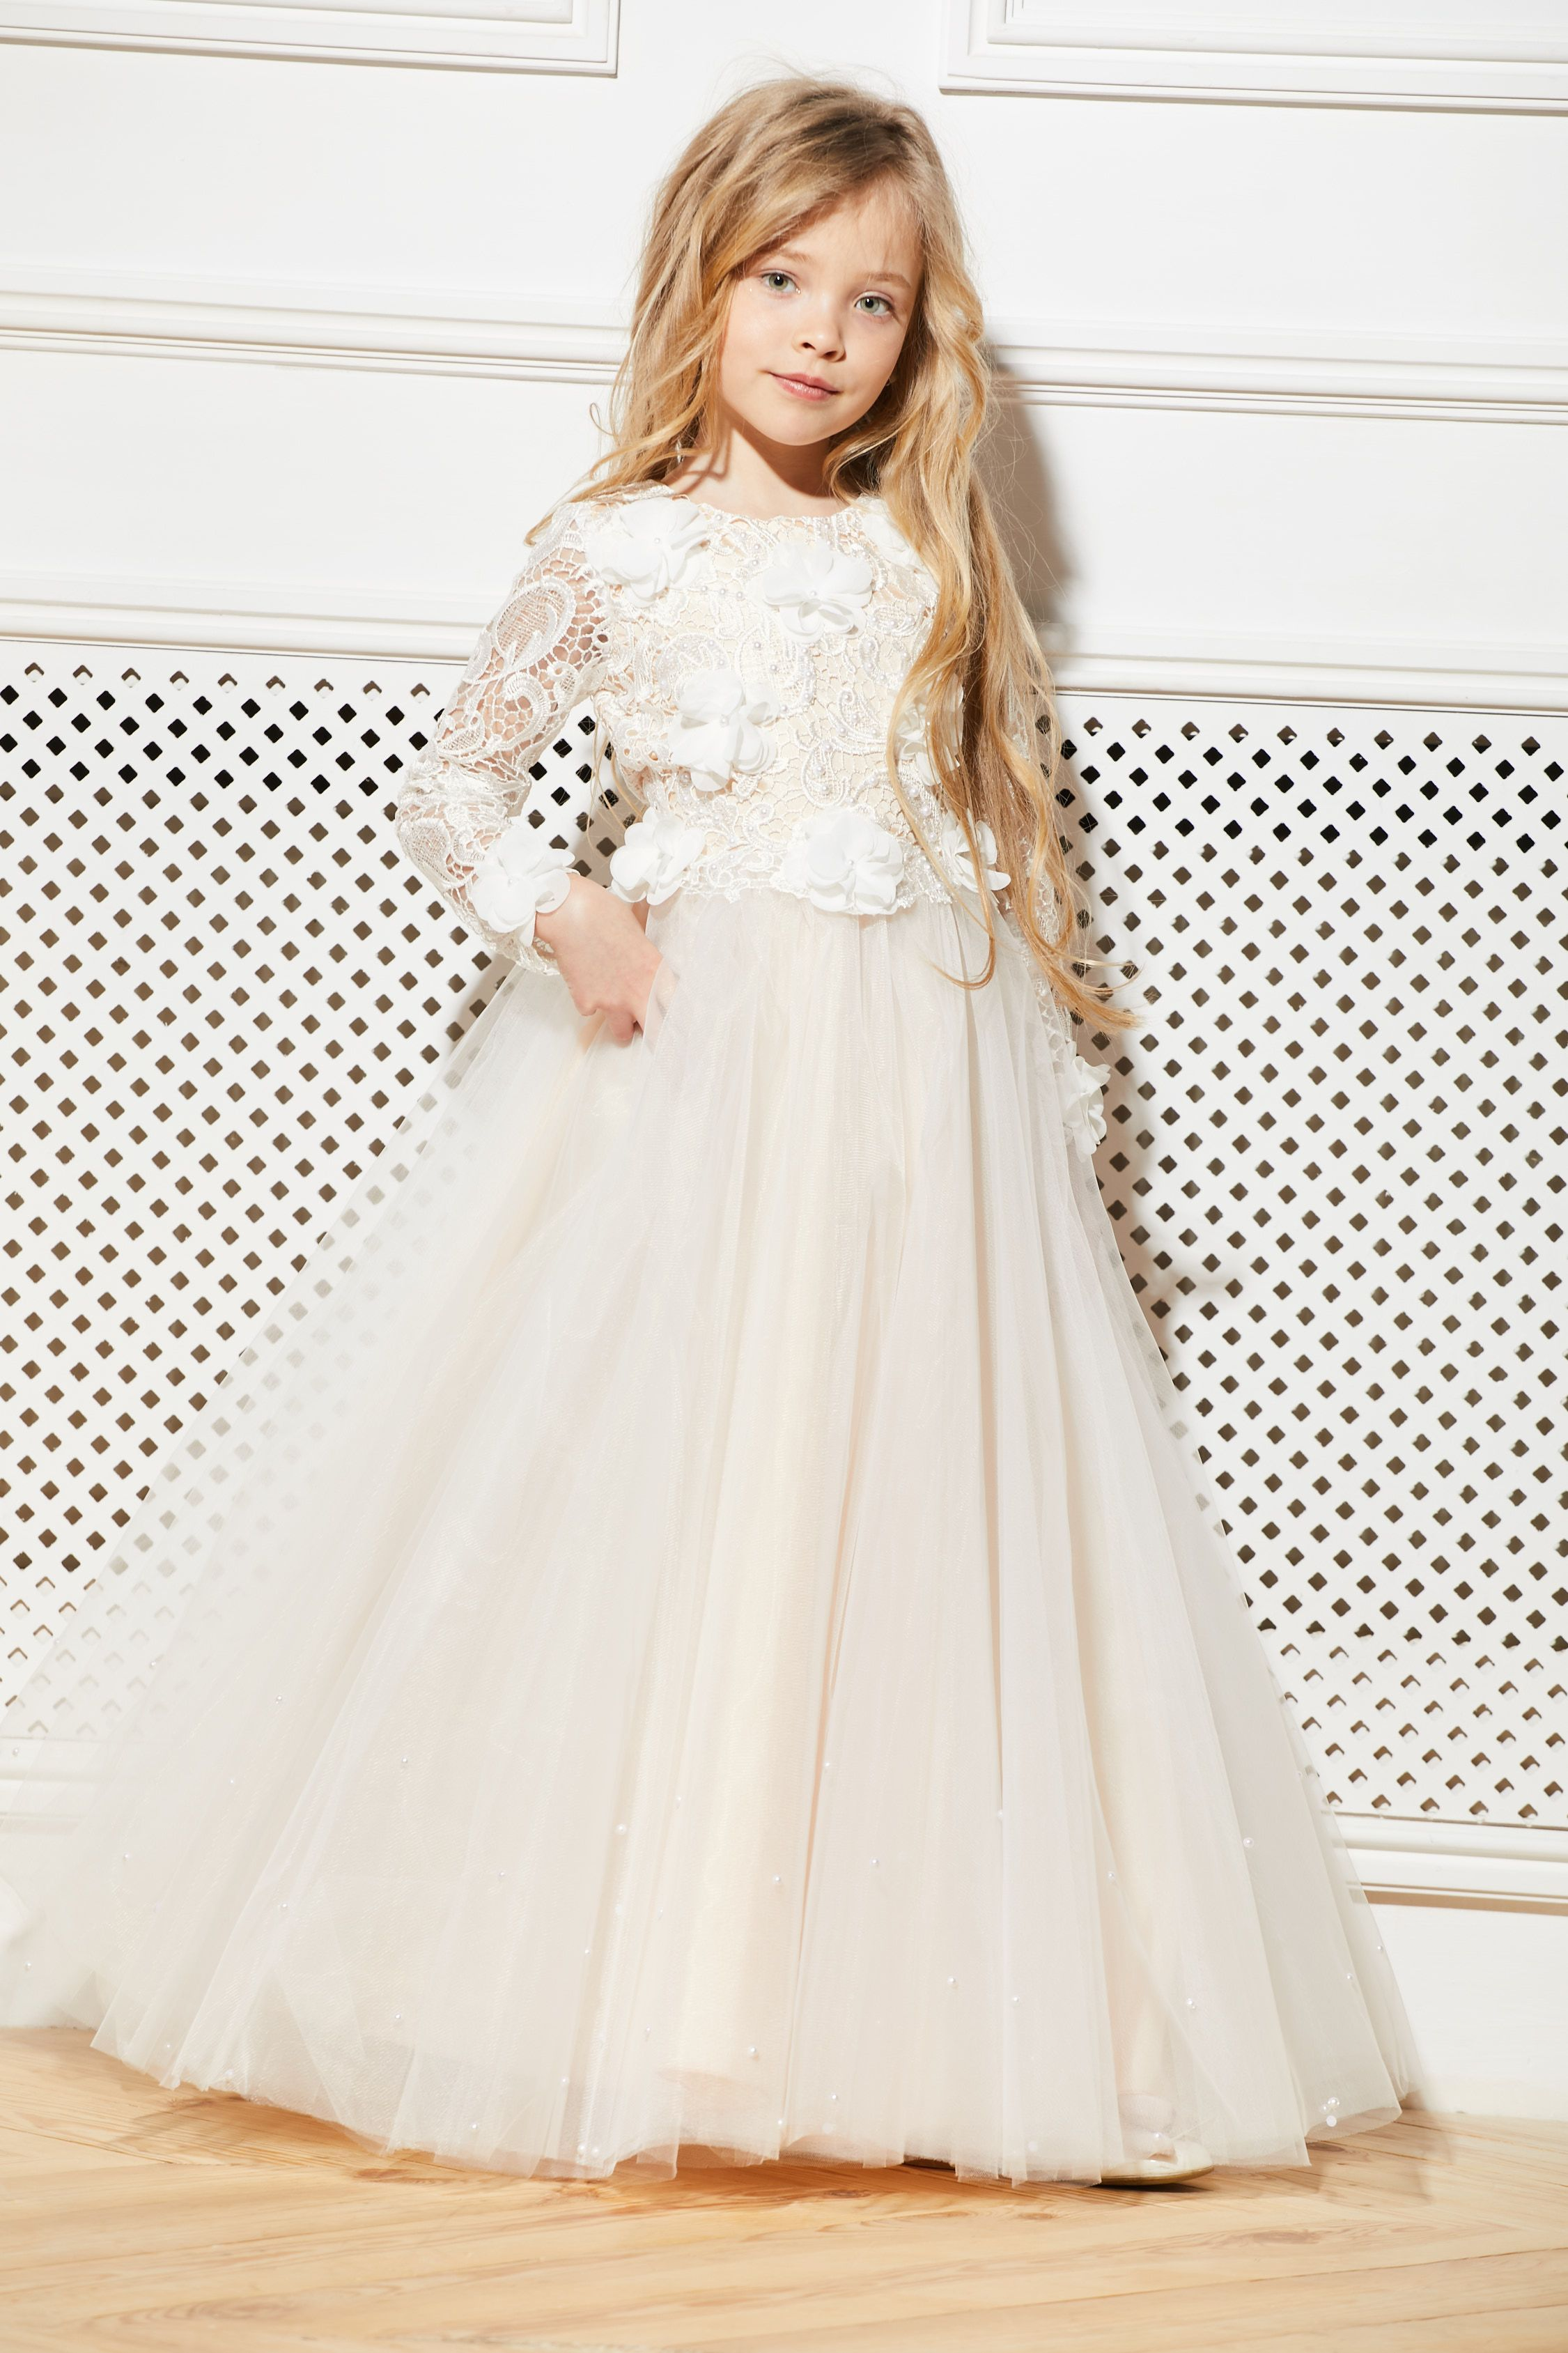 f3fbe8a6980 Ivory Flower Girl Dress Cream Tulle Tutu Birthday Wedding Kids Guipure Blush  Lace Pearls Junior Bridesmaid Ballerina Baby Formal Party USD 85.00+  Gorgeous ...